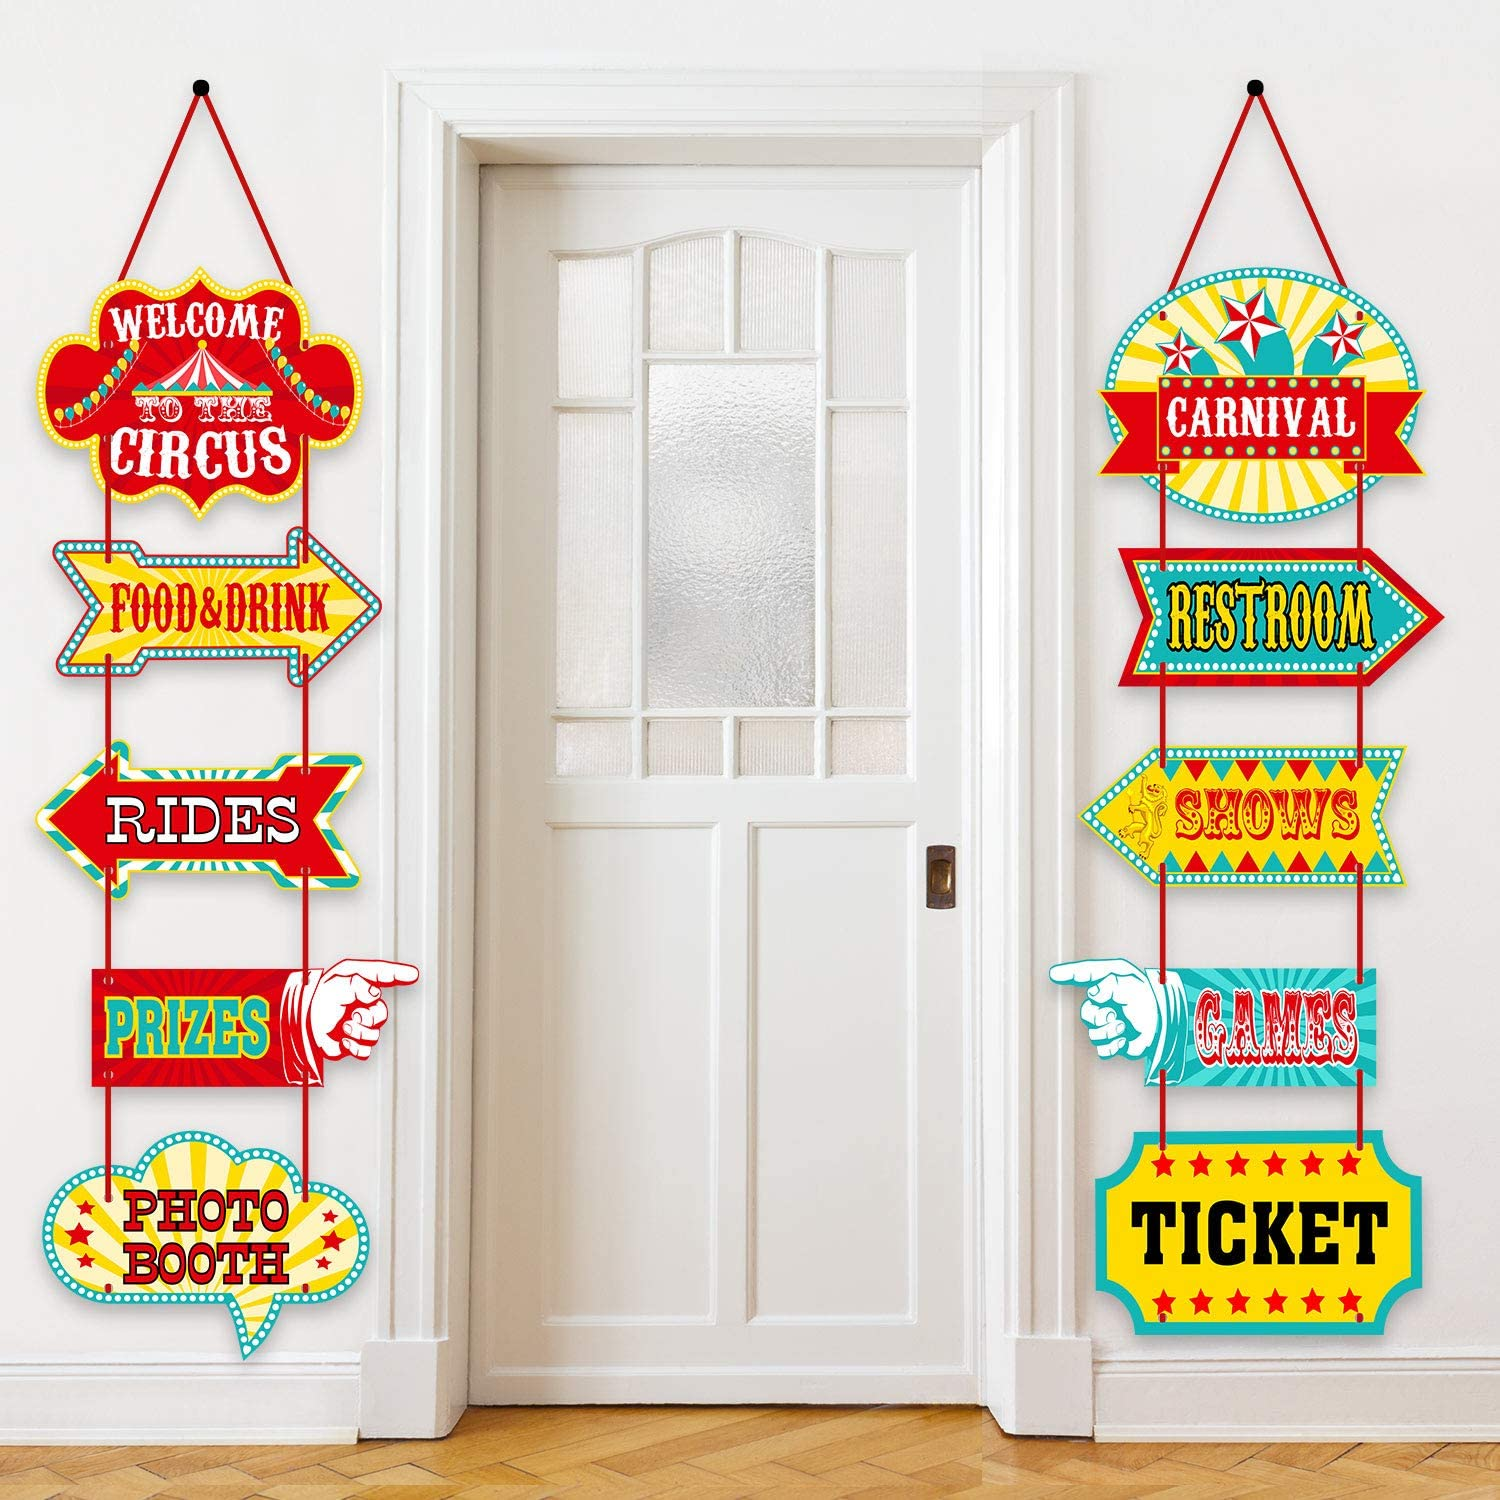 Blulu Carnival Decorations, Laminated Circus Carnival Signs Circus Theme Party Signs Carnival Party Supply Decor Paper Cutouts with 2 Ribbons and Glue Point Dots (Style A)